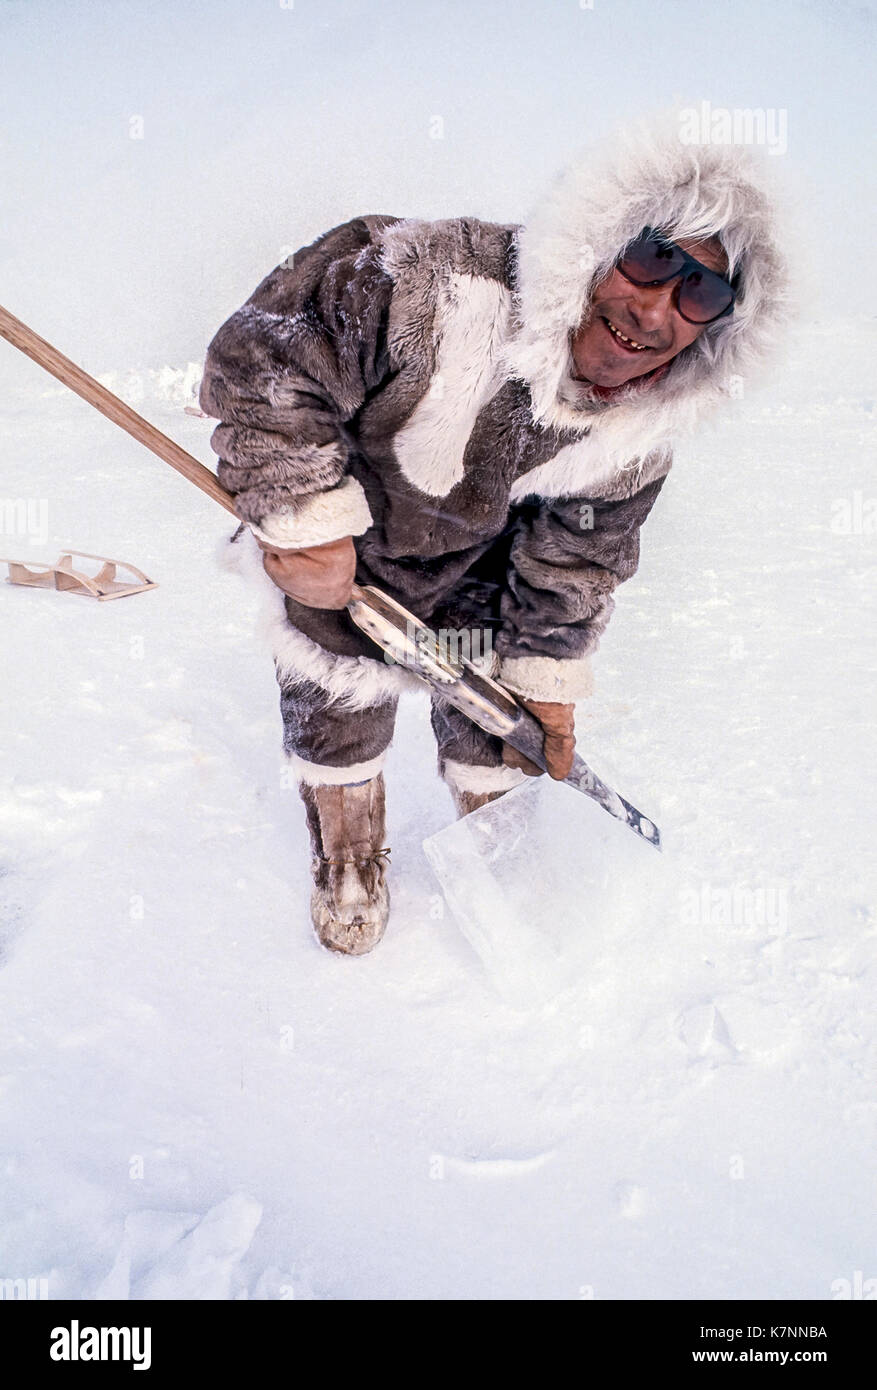 Inuit elder man, mid 60s, dressed in traditional caribou skin clothing, poses with tool he uses to cut ice blocks for building igloos. - Stock Image